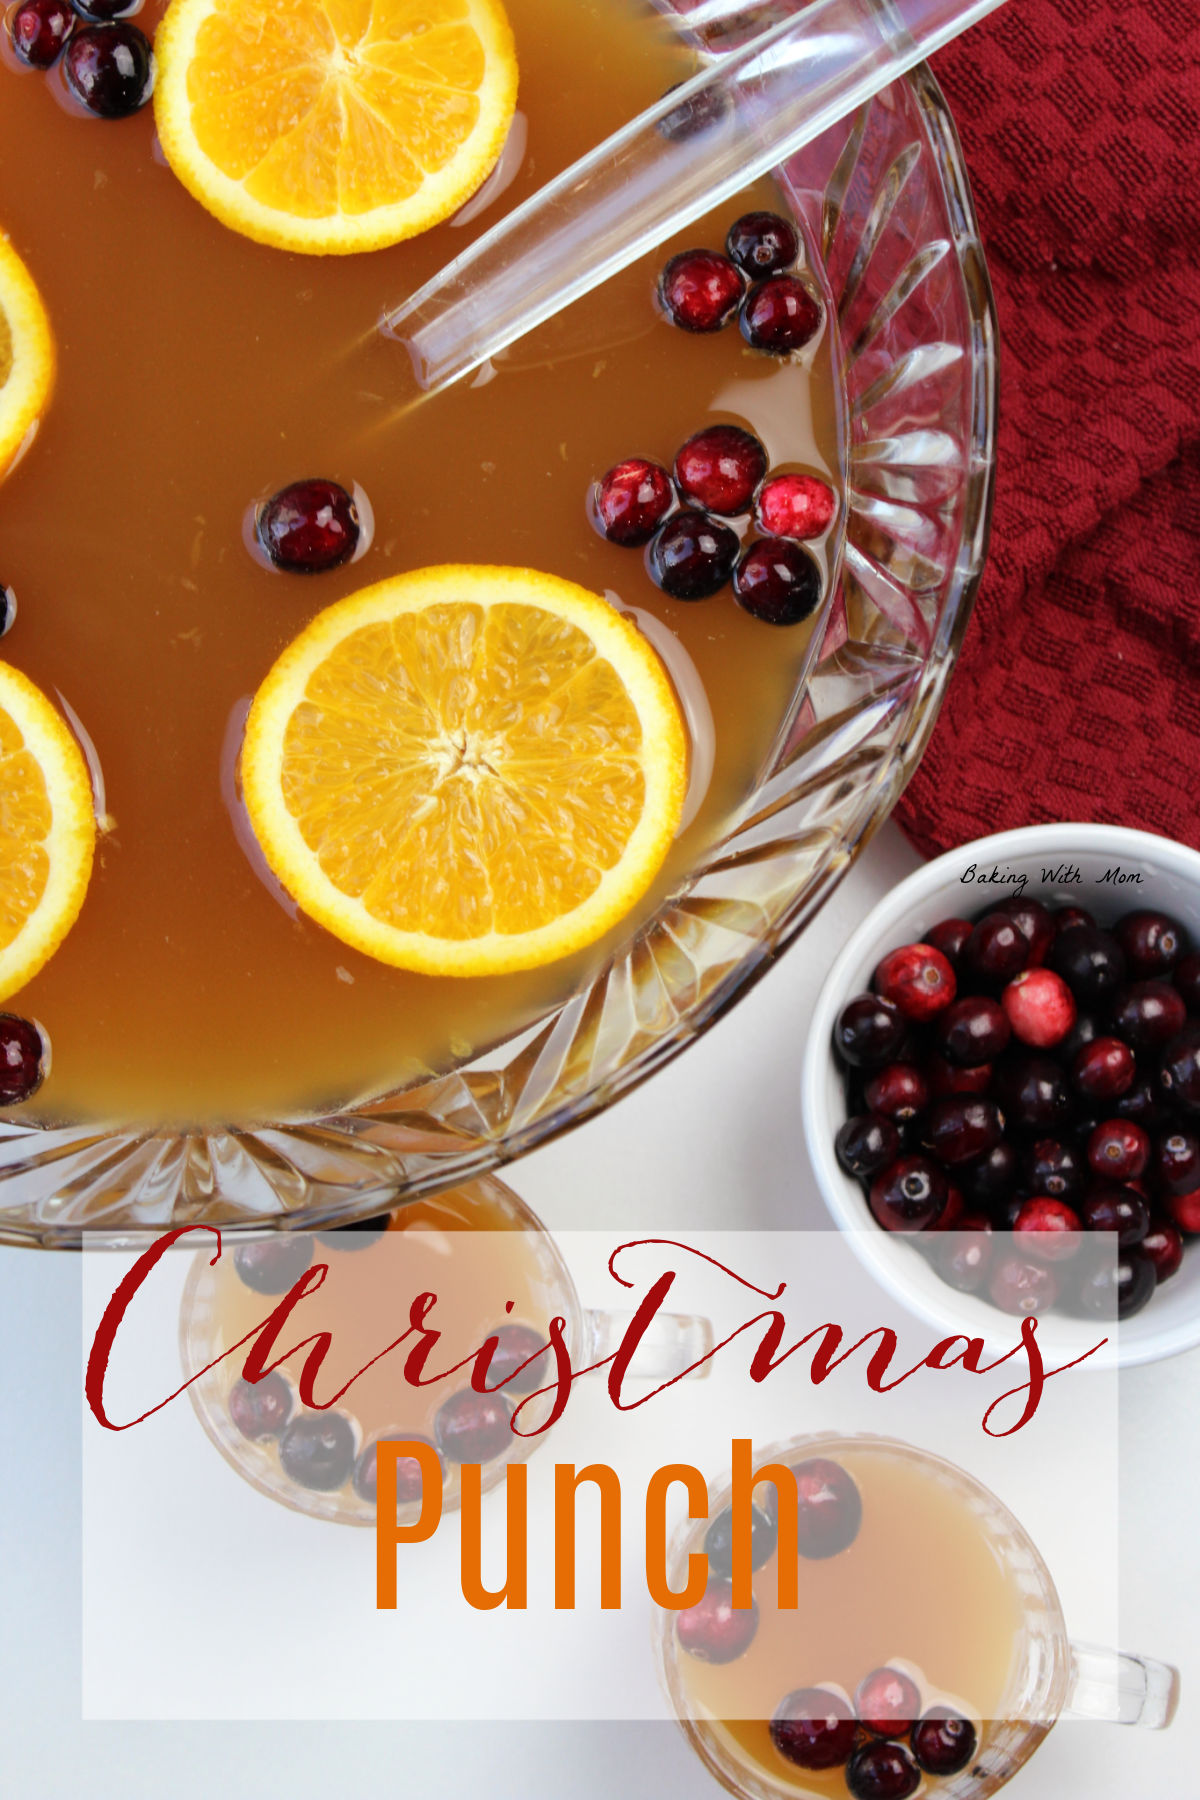 Bowl of punch with oranges and cranberries in a clear bowl with a bowl of cranberries besides.